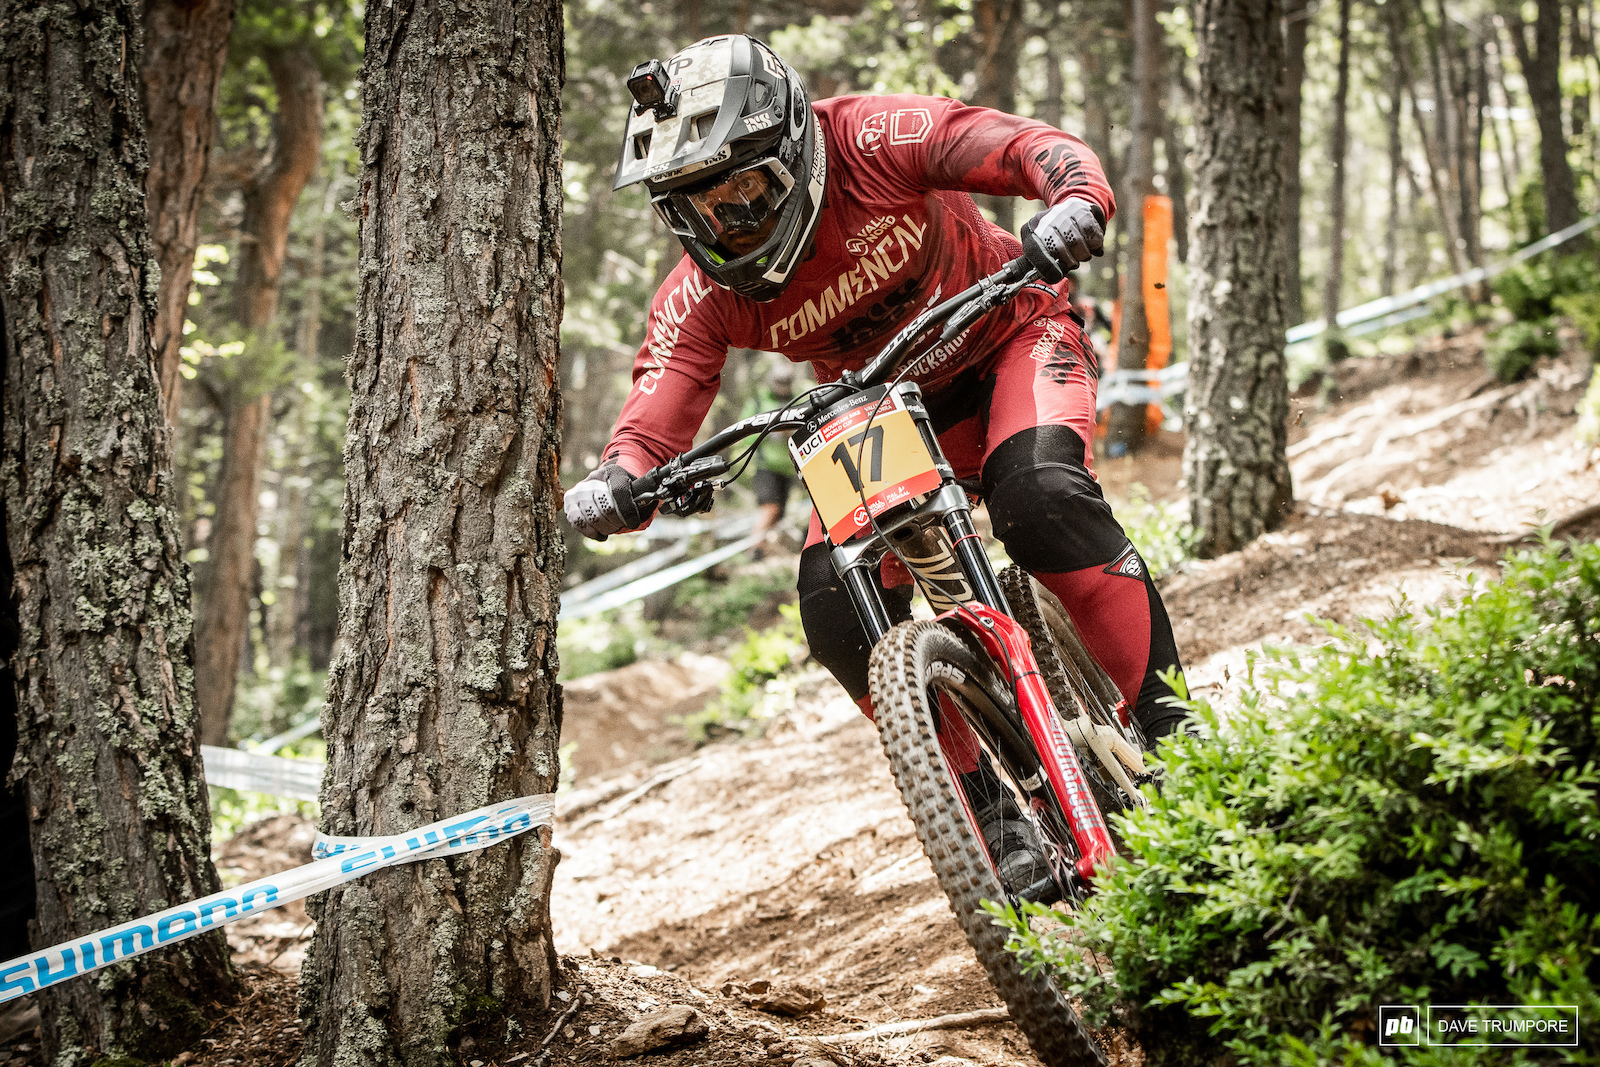 Remi Thirion has tasted victory before on this track and it has always suited his aggressive style well. Remi is still getting back up to speed after breaking his back in 2017 but if there is any track he is capable of a top result it is this one.